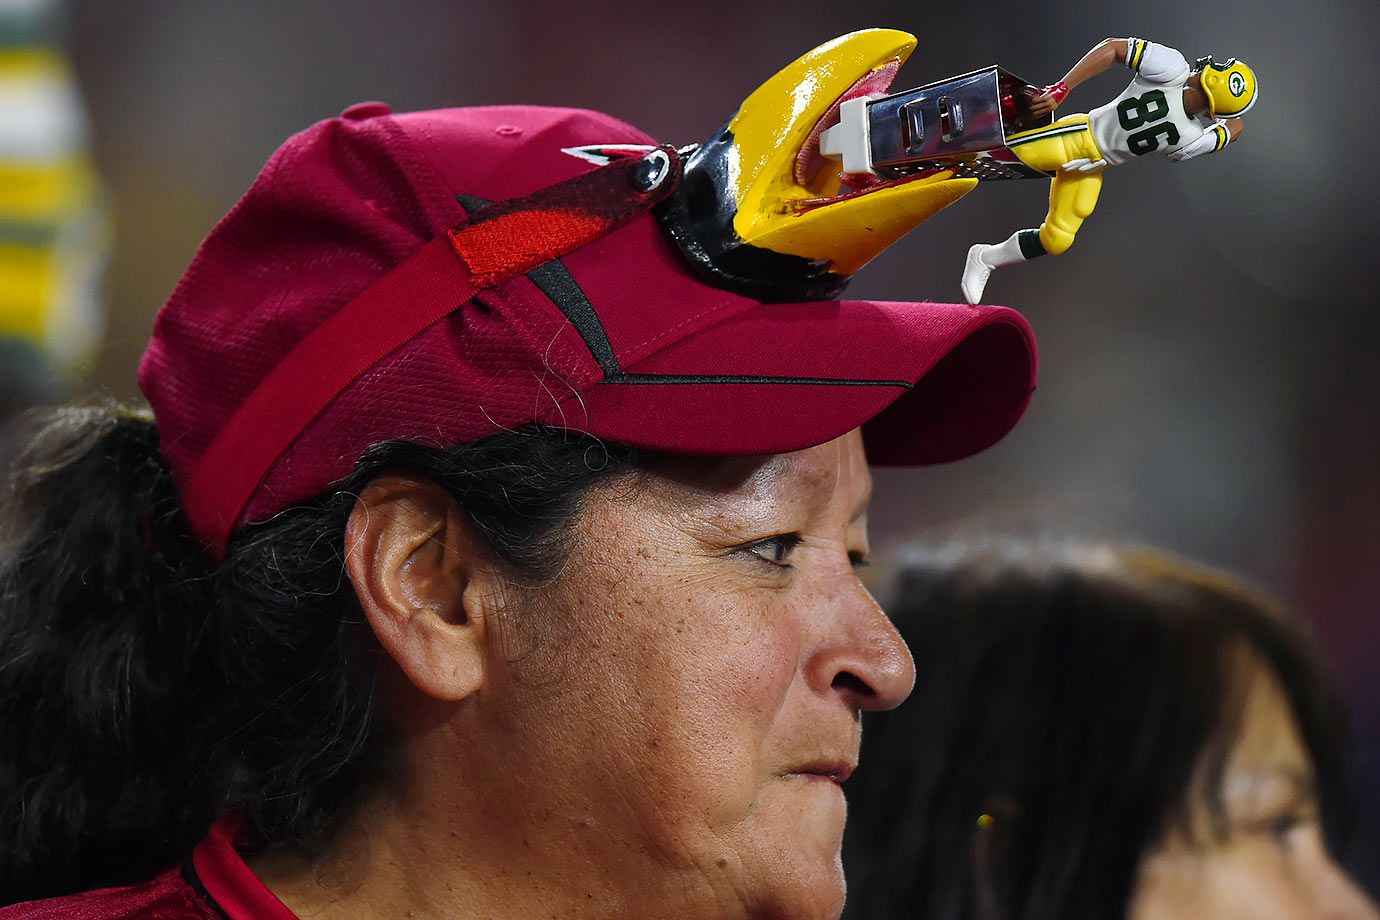 This Arizona Cardinals fan sports an interesting hat during the NFC divisional playoff game against the Green Bay Packers.